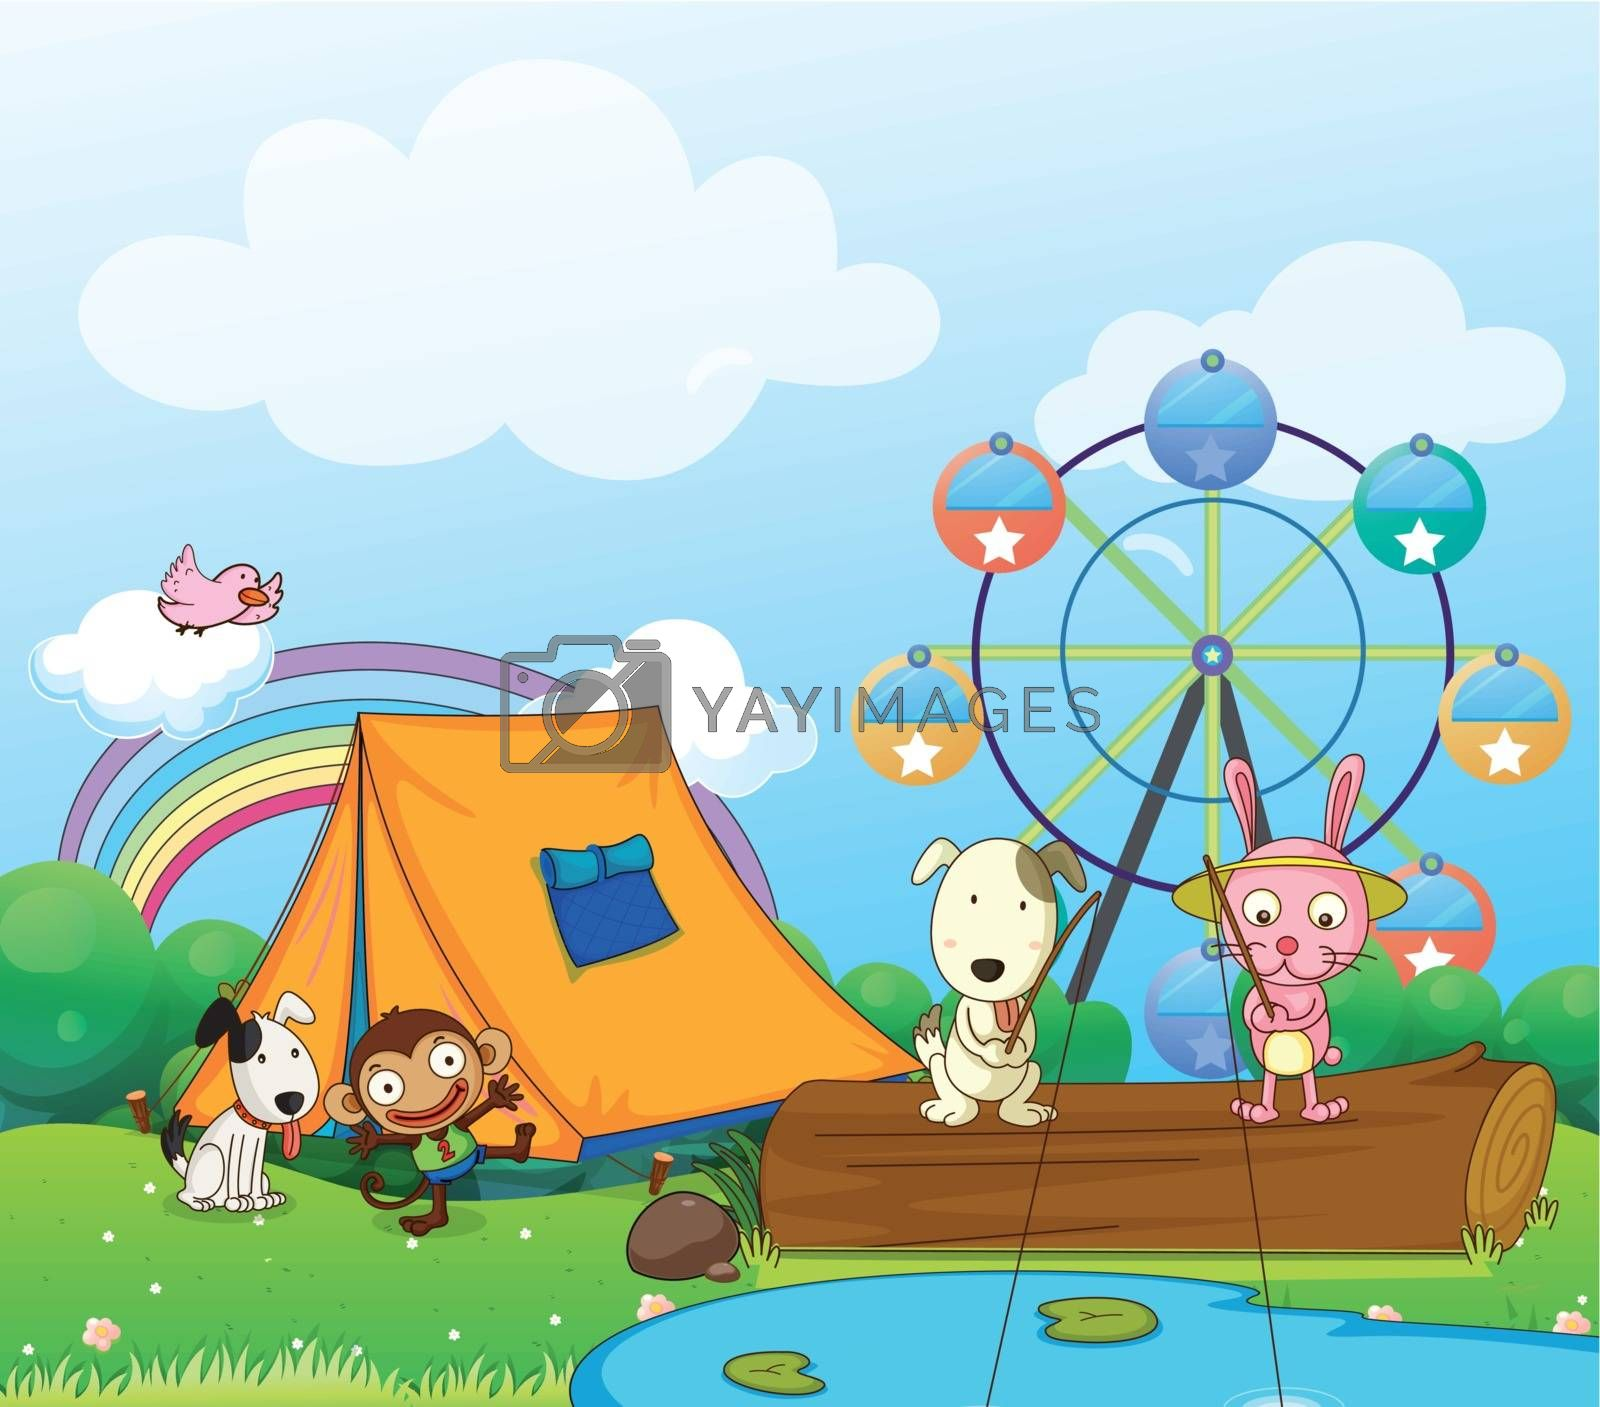 Illustration of the animals near the ferris wheel